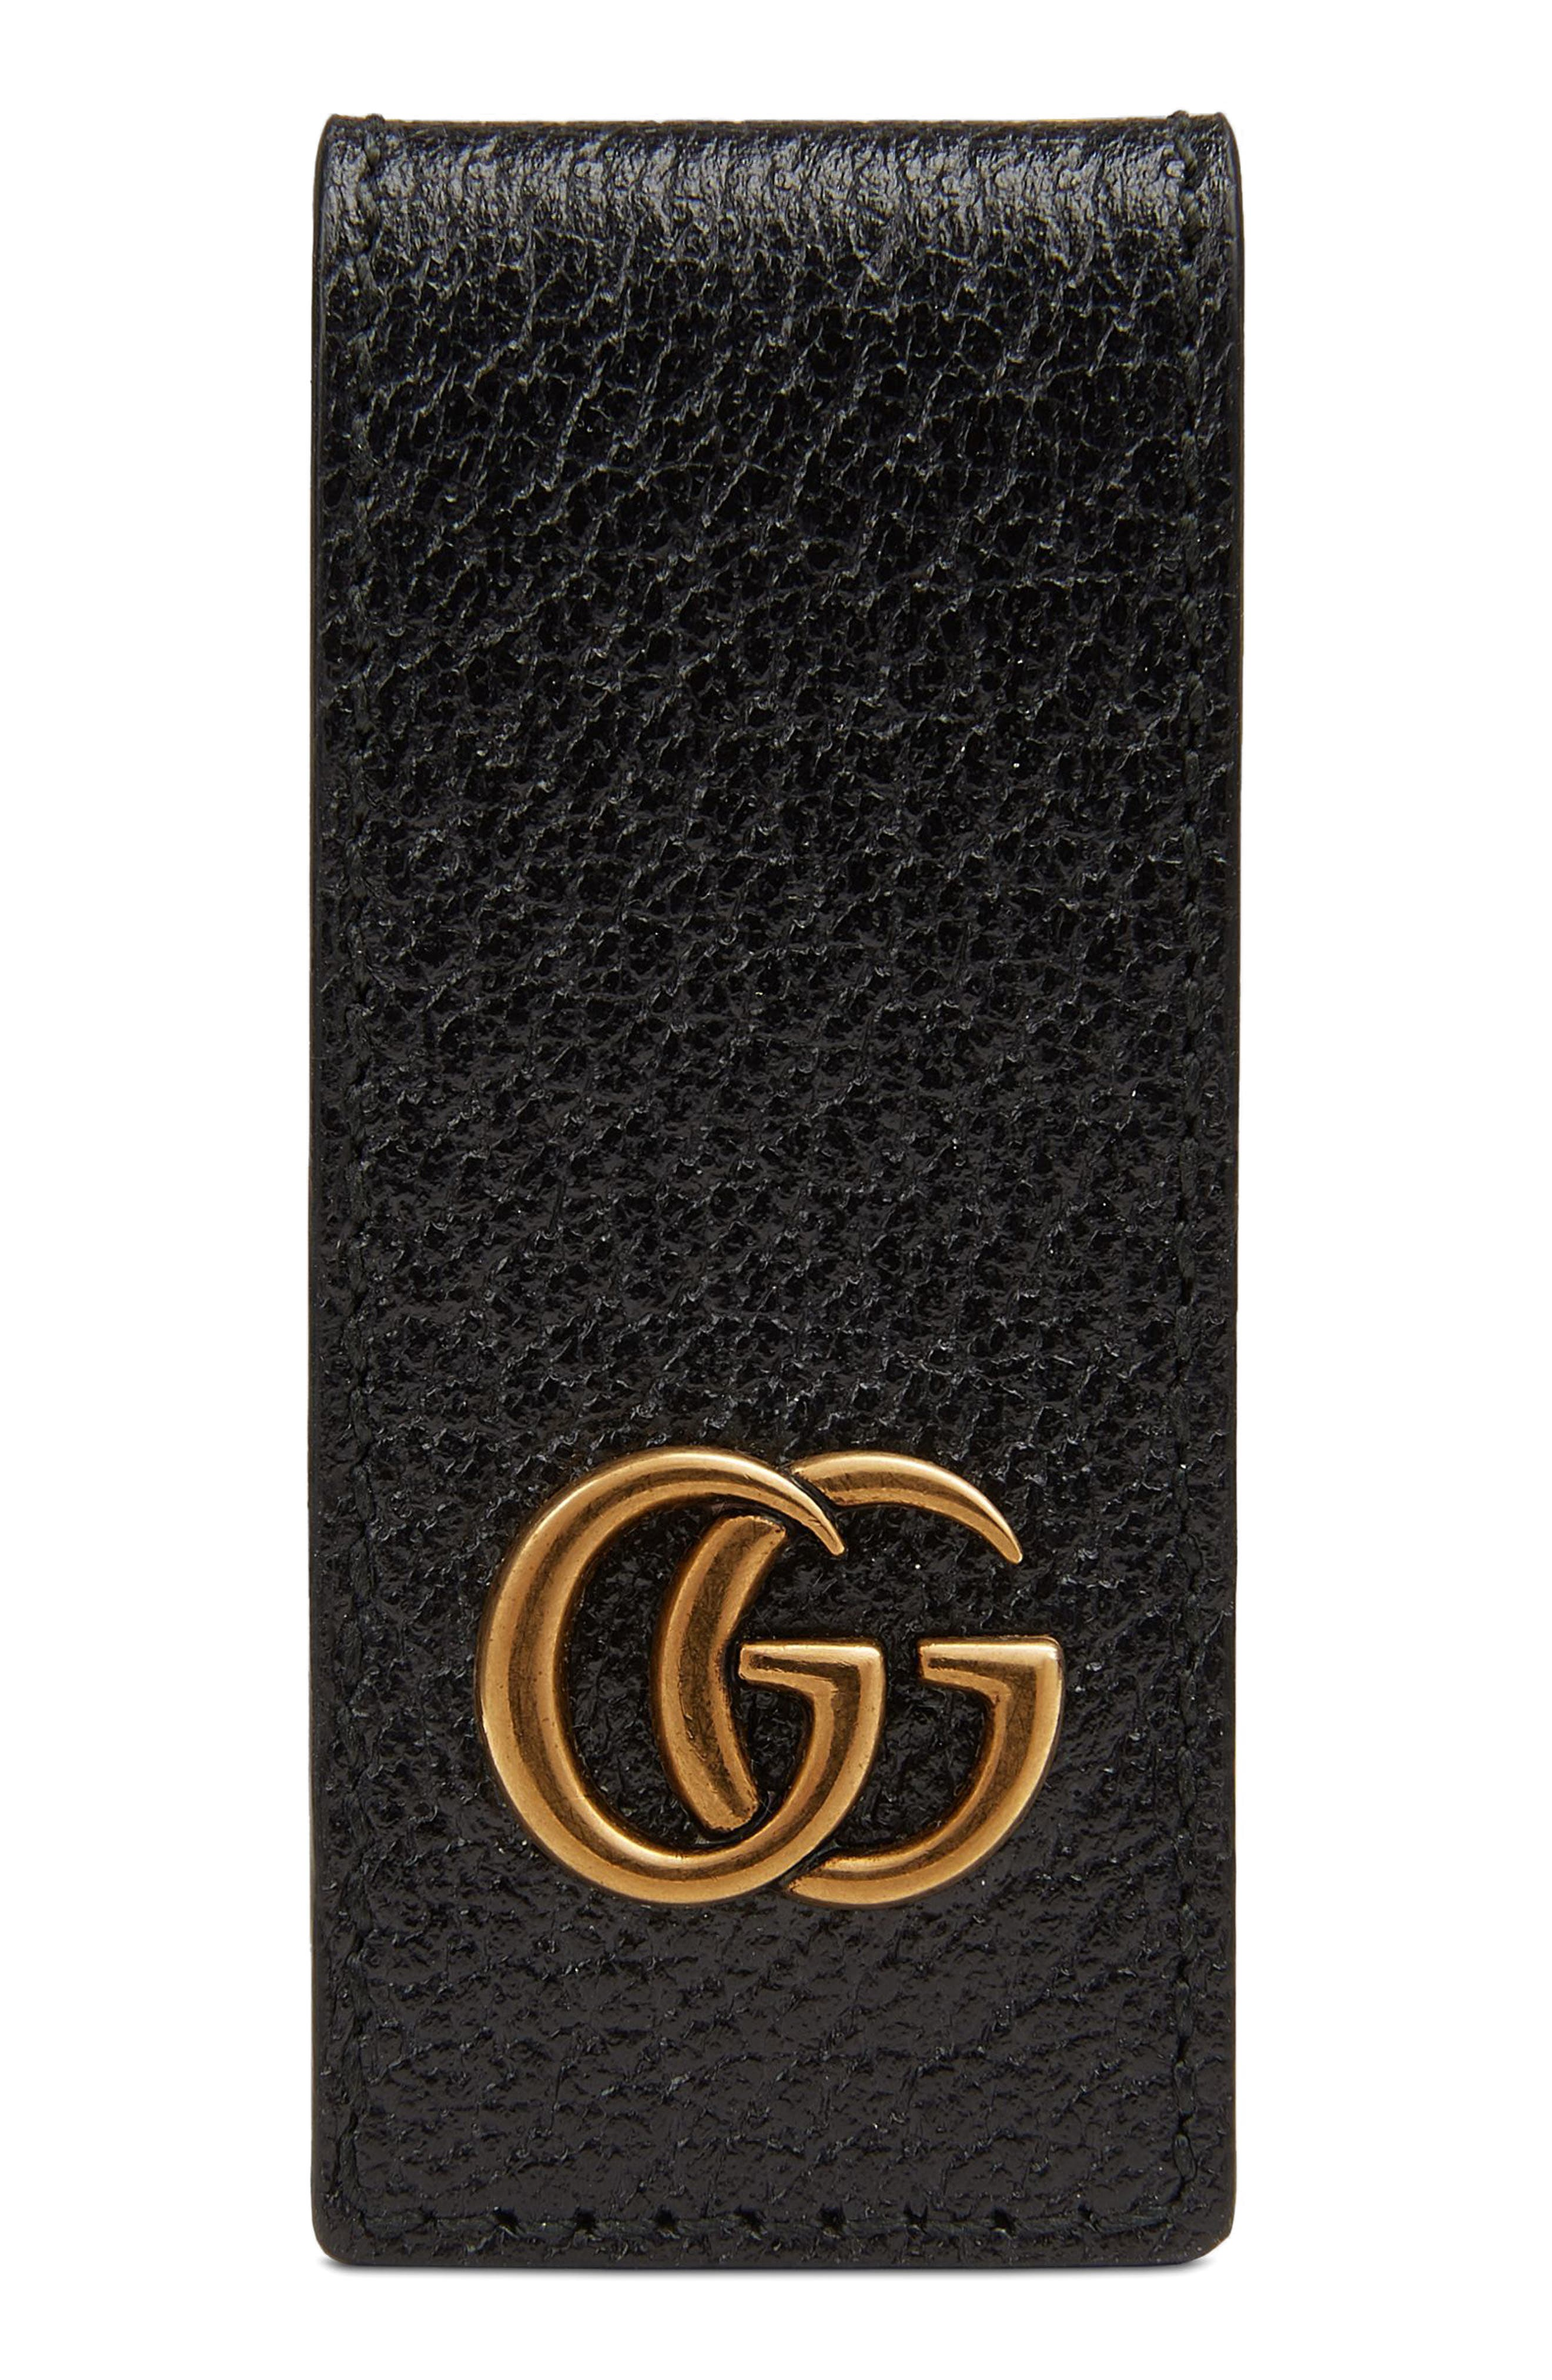 GG Marmont Money Clip